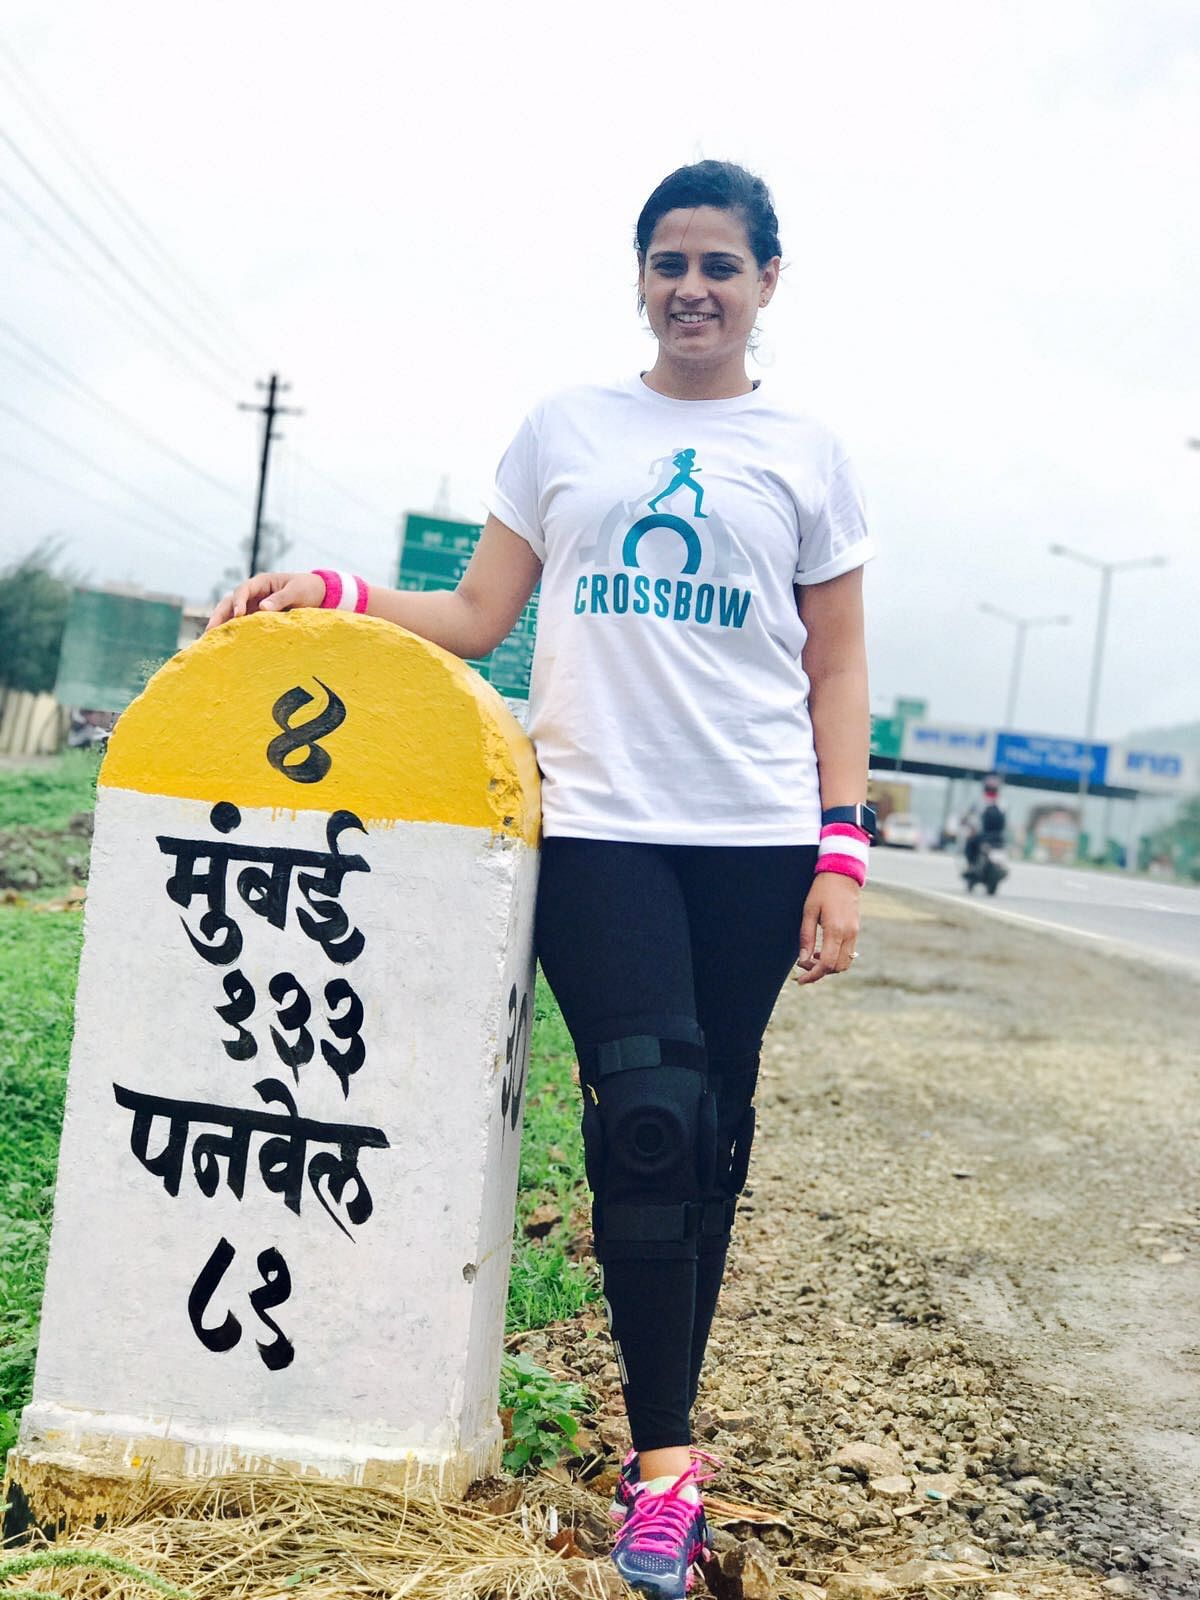 Srishti has been walking 25 kilometres every 24 hours for over 46 days.